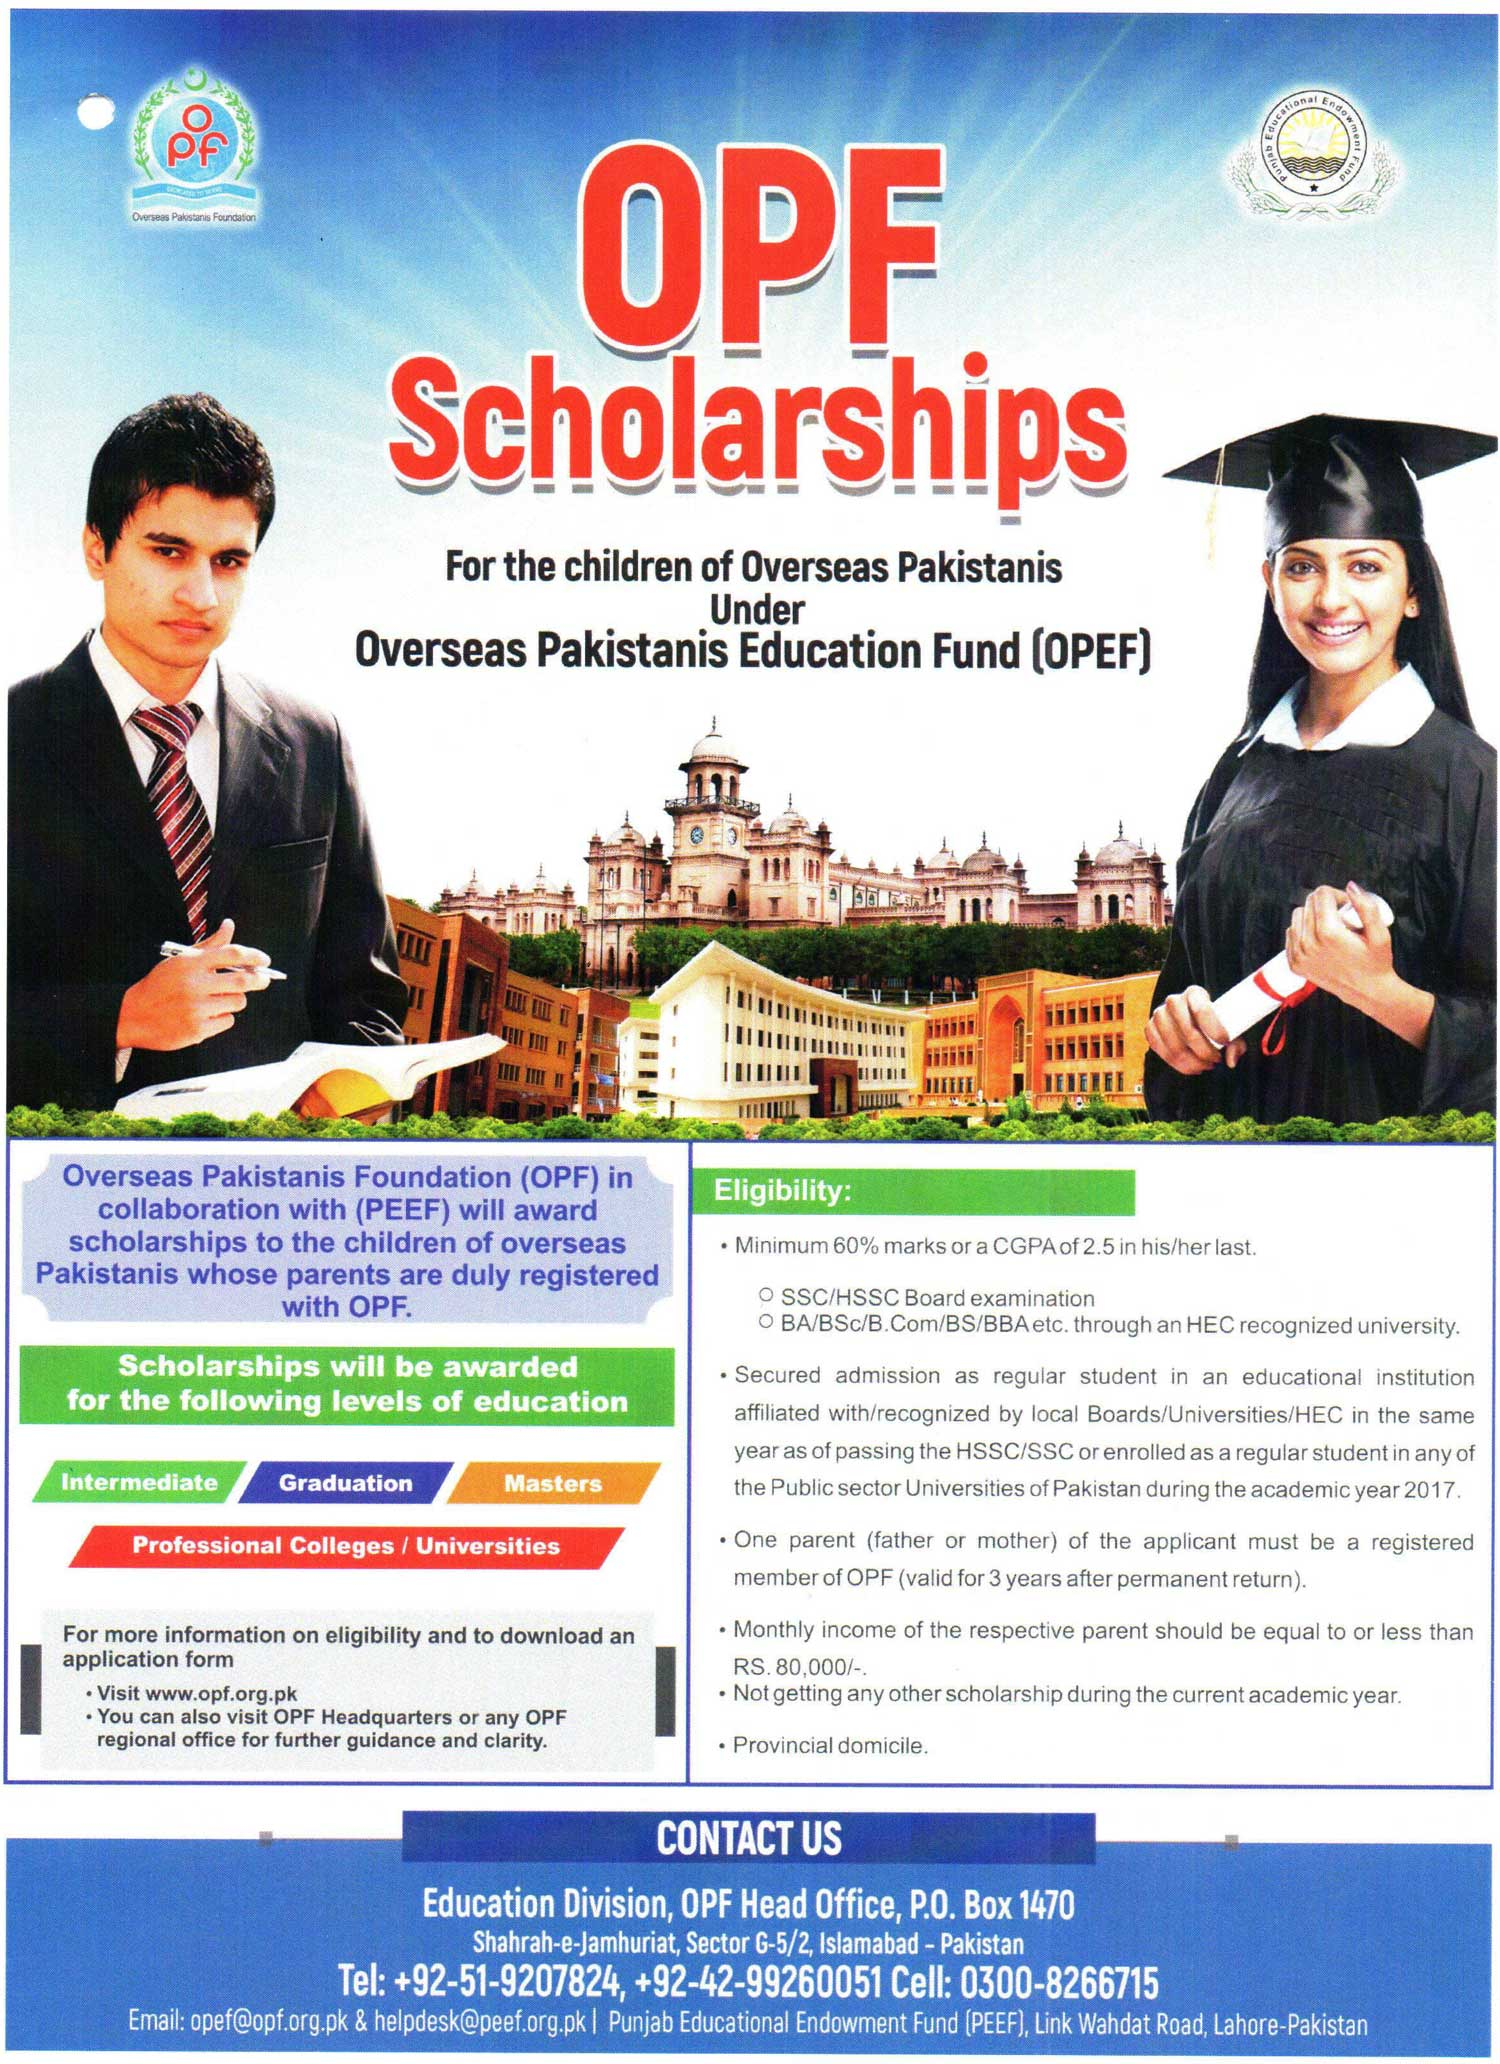 OPF Scholarships for the Children of Overseas Pakistanis Under Overseas Pakistanis Education Fund